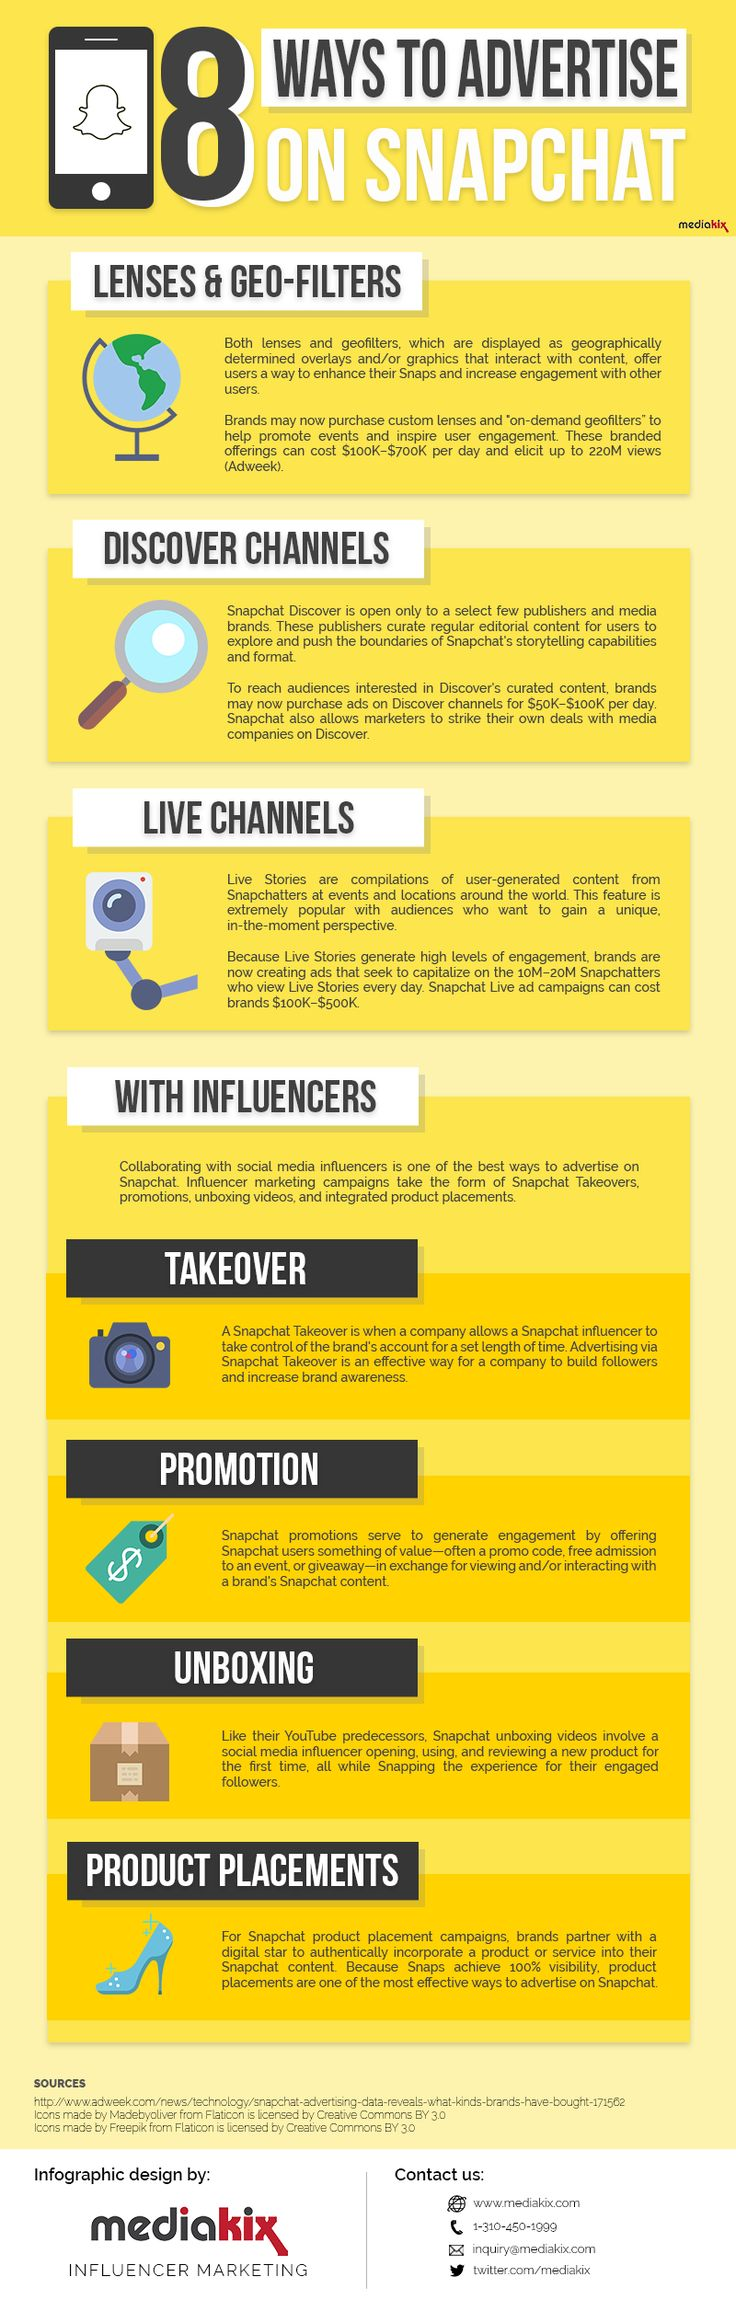 8 Ways to Advertise on Snapchat [Infographic] | Social Media Today